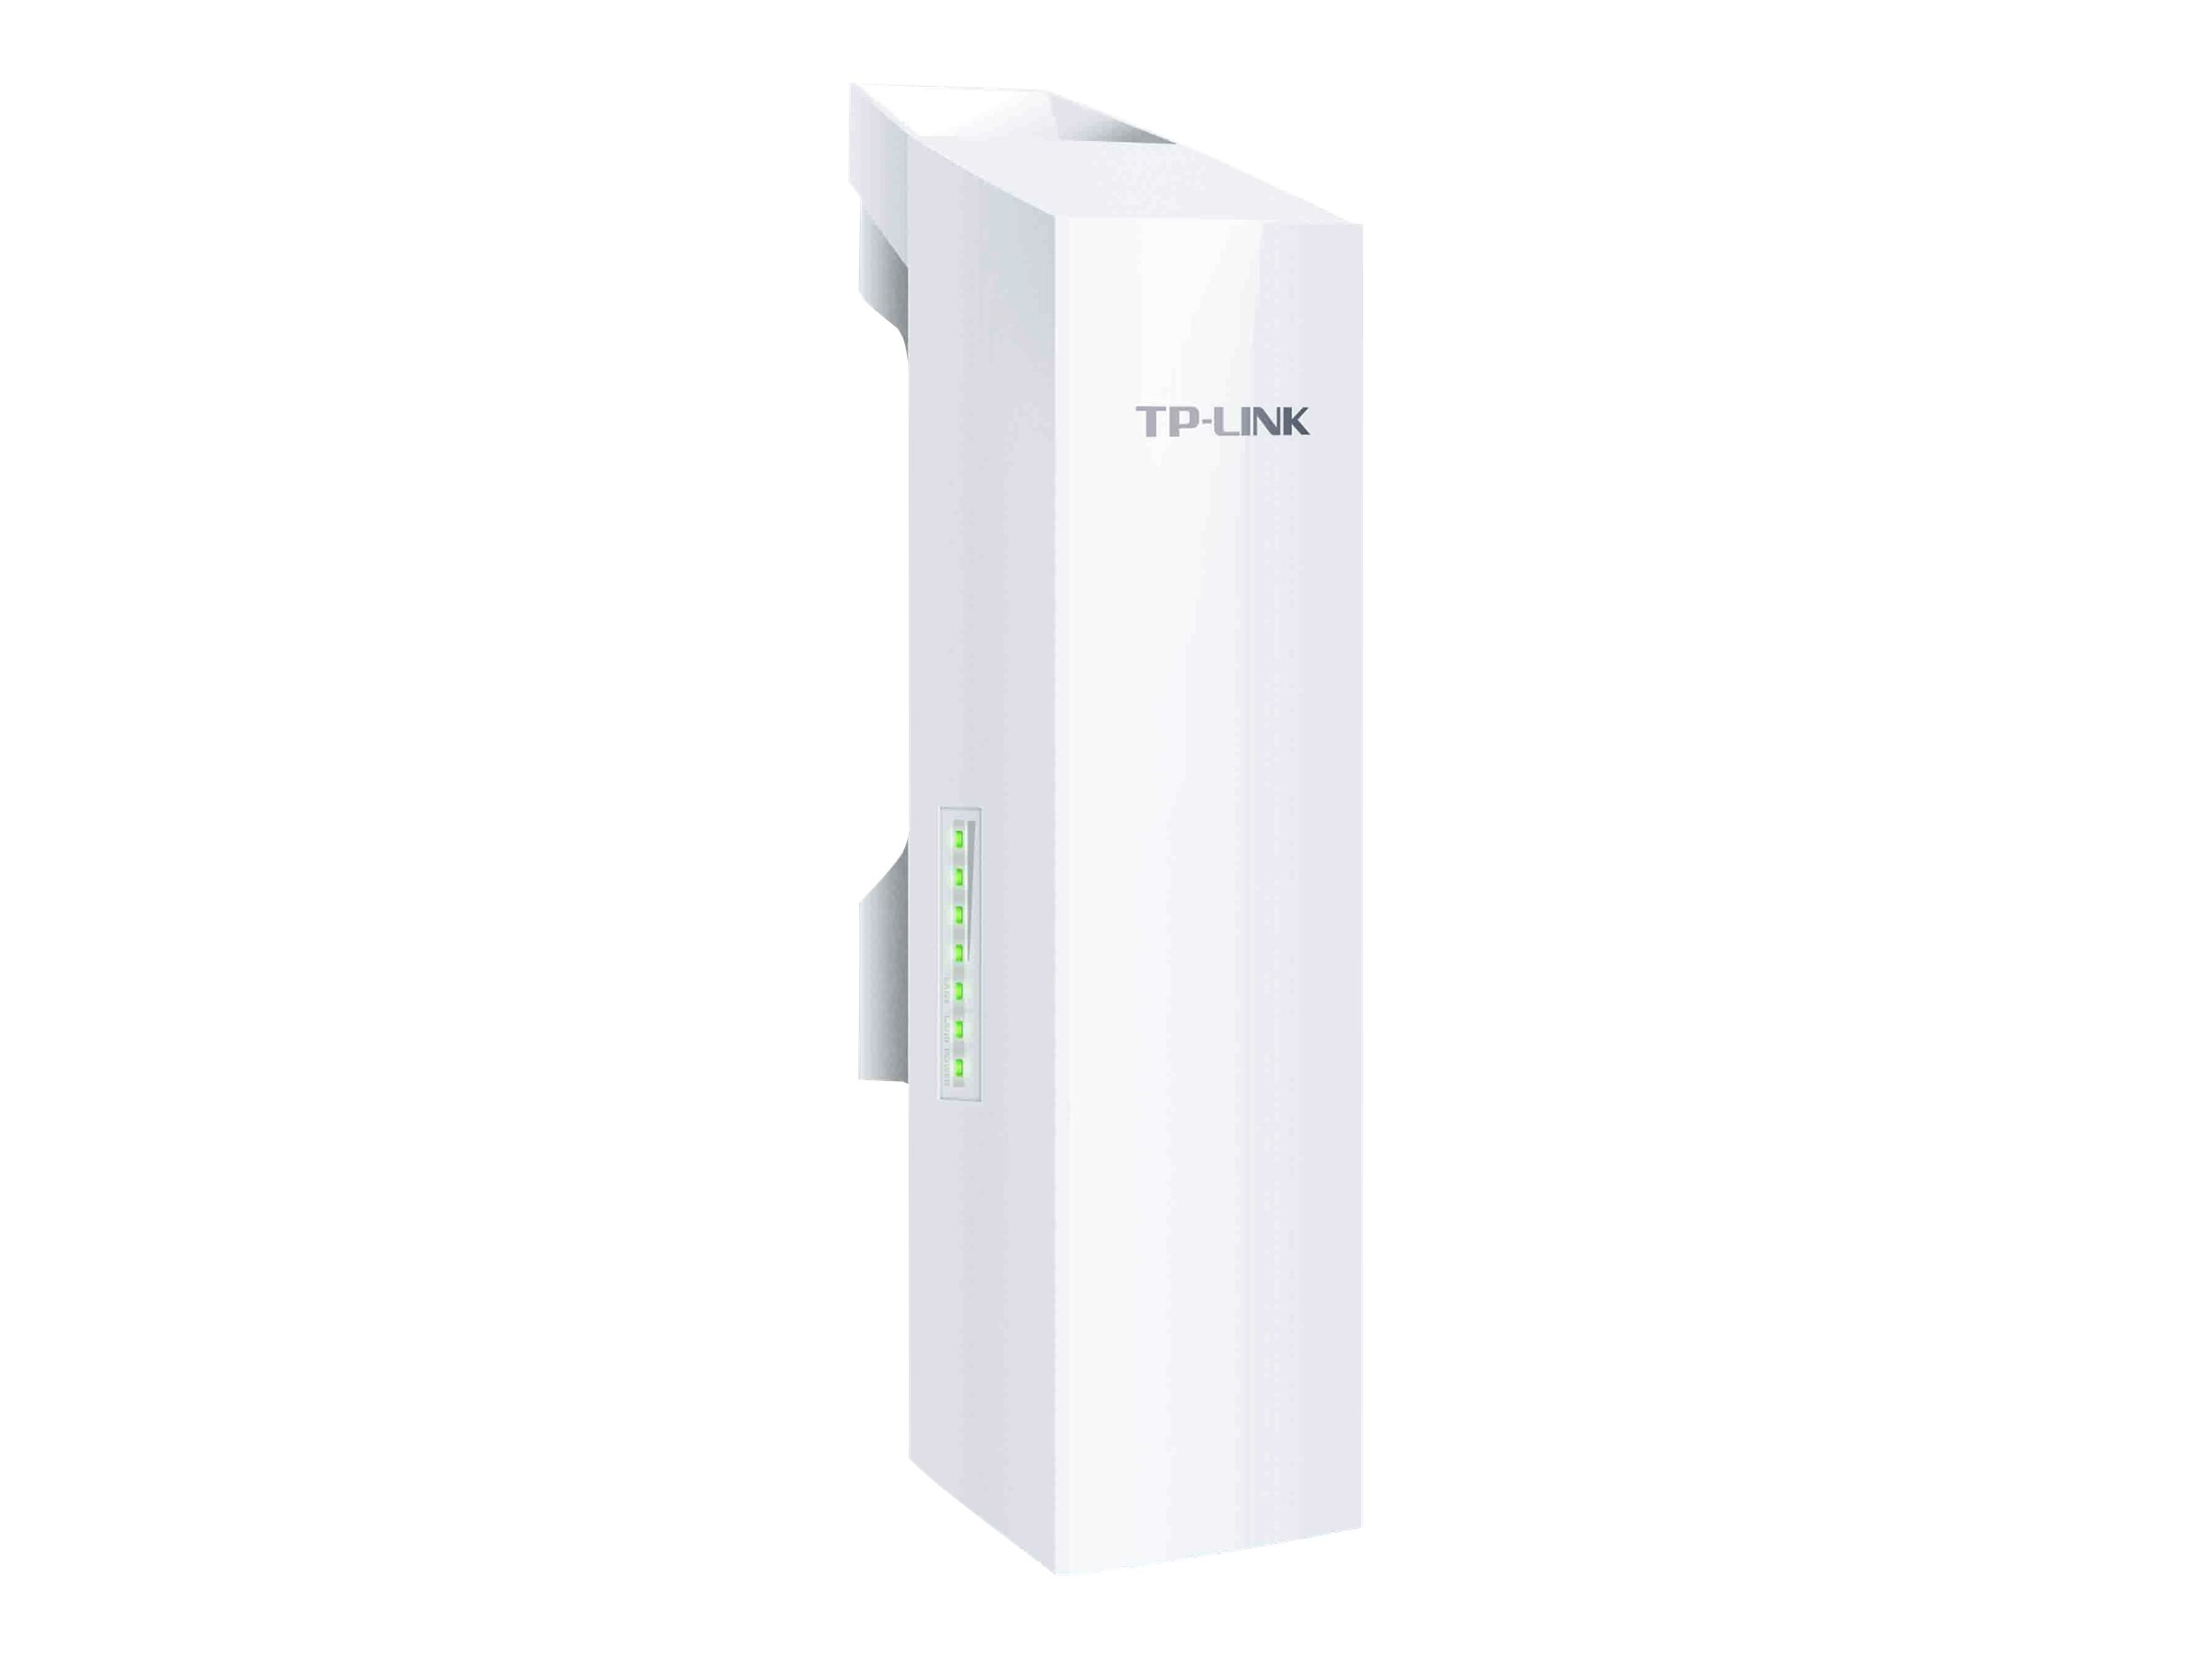 TP-Link CPE210 - wireless access point